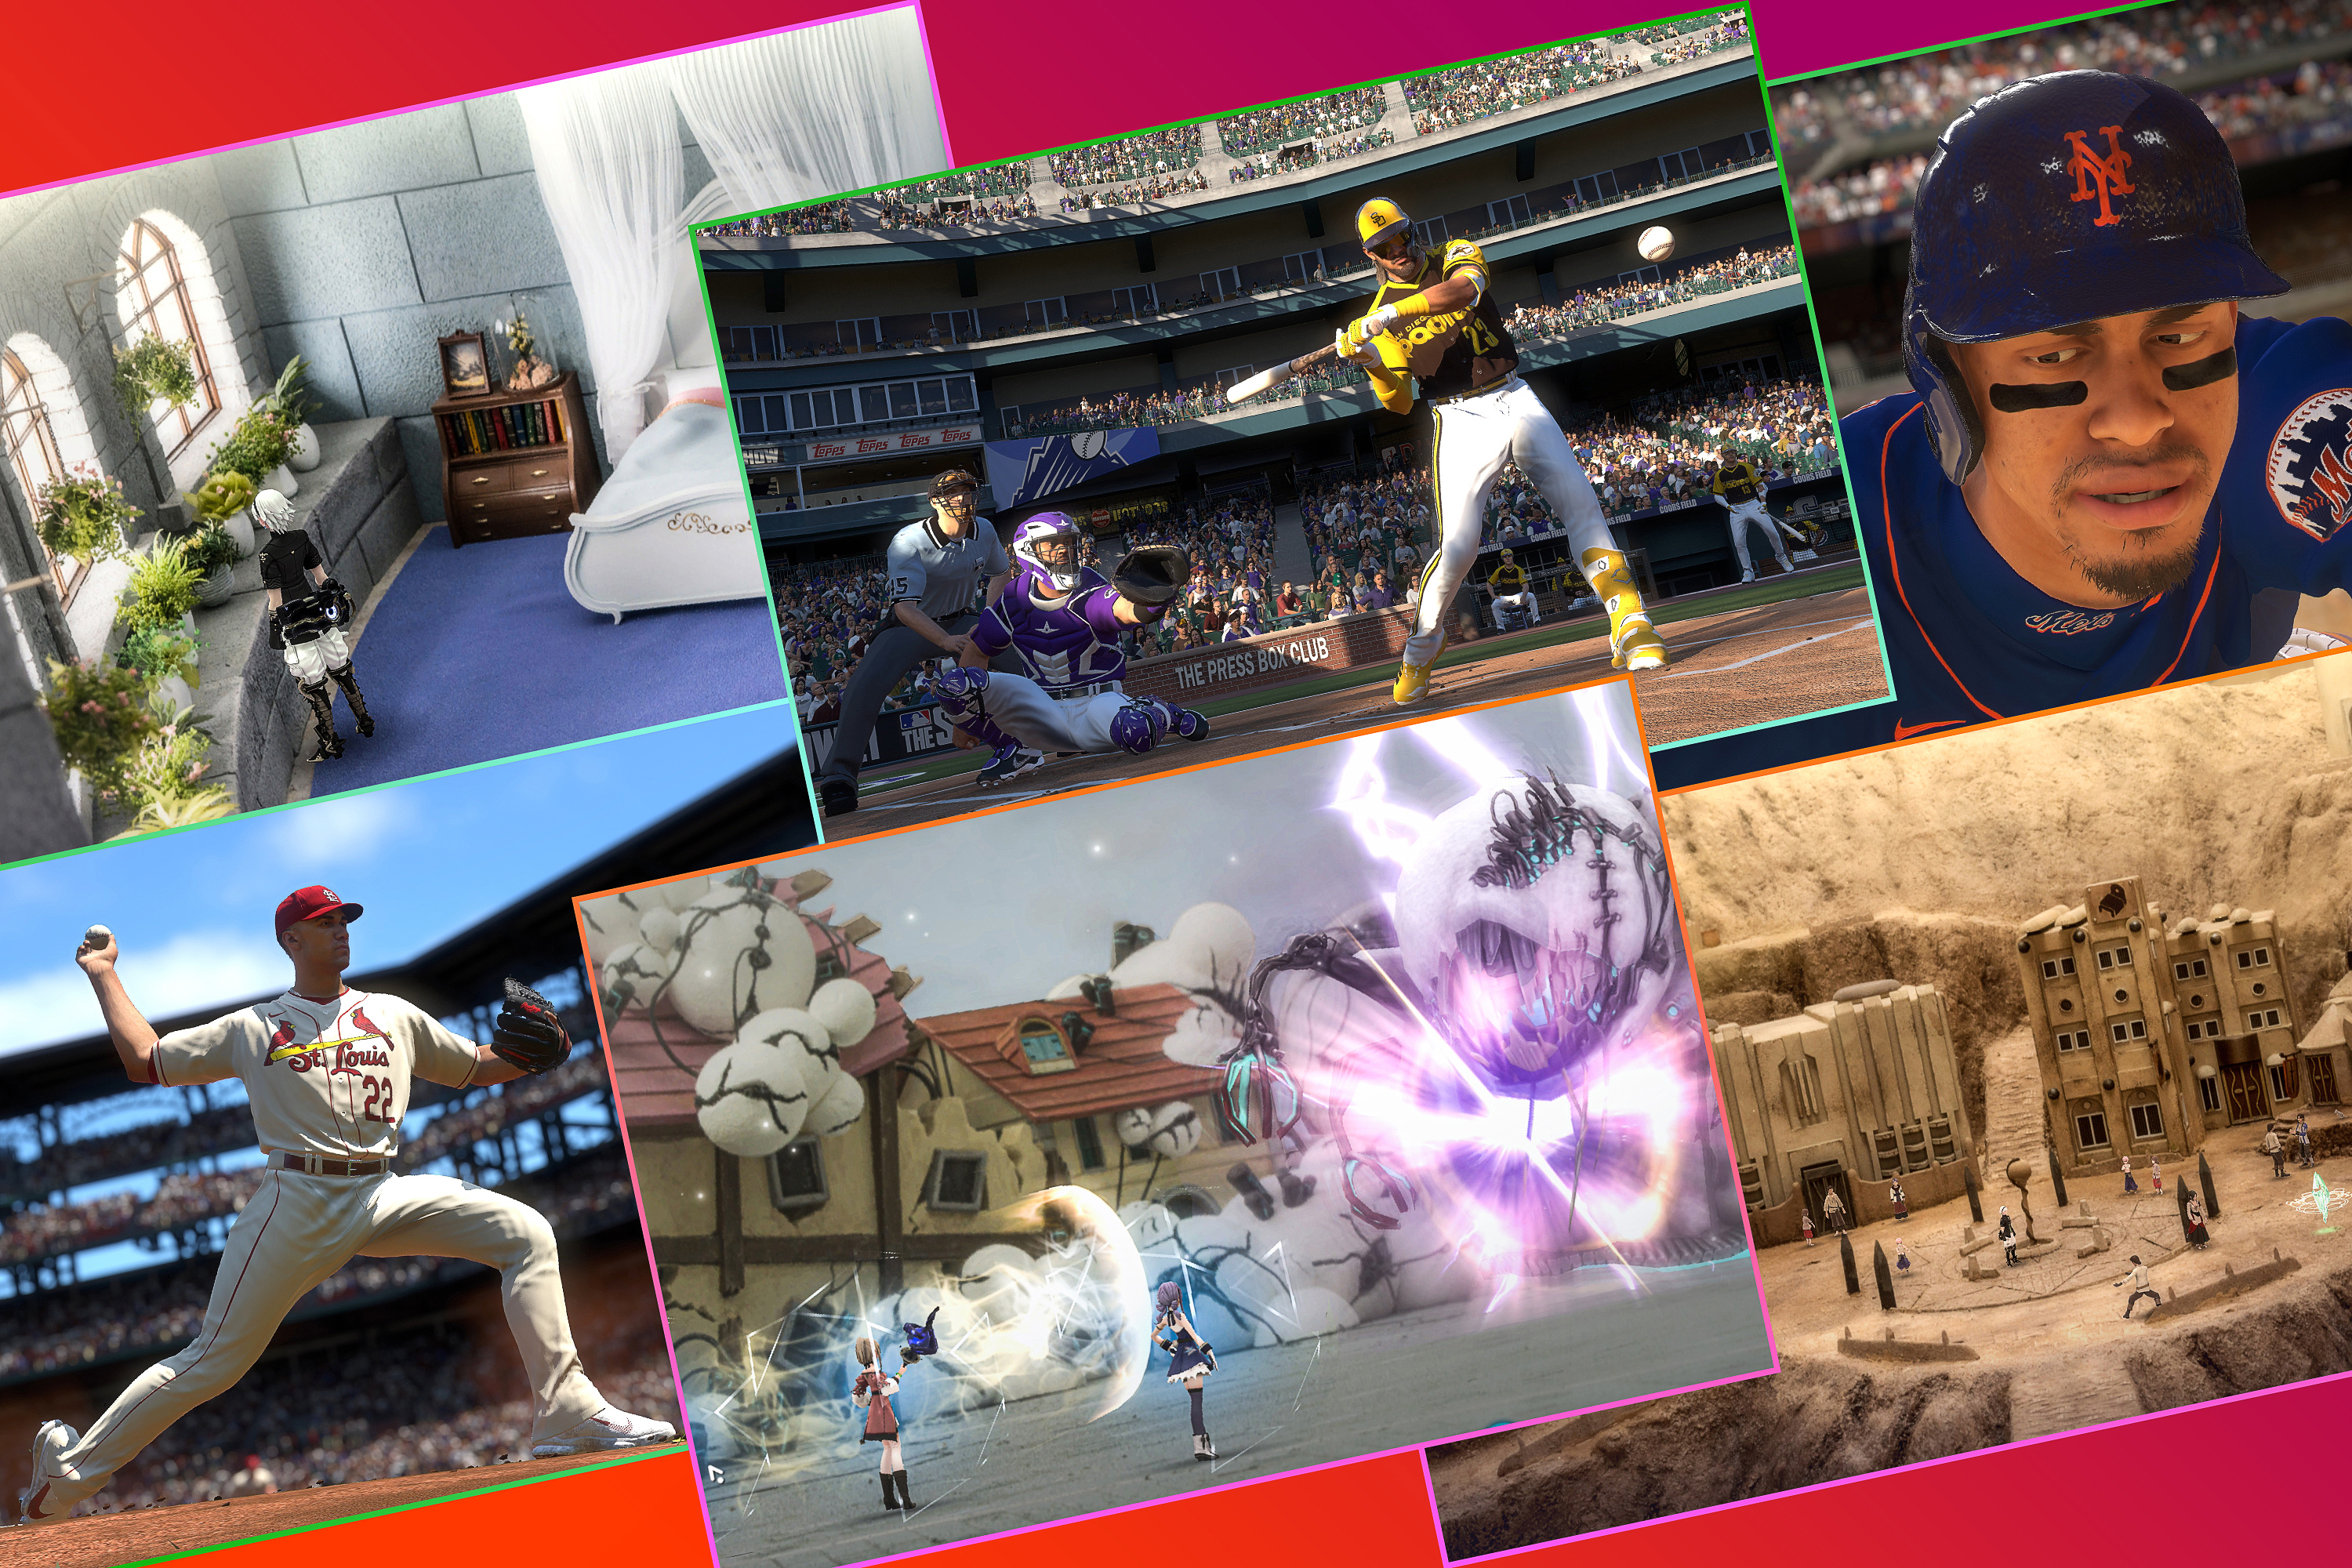 Grid featuring six different screens from Fantasian and MLB21 video games